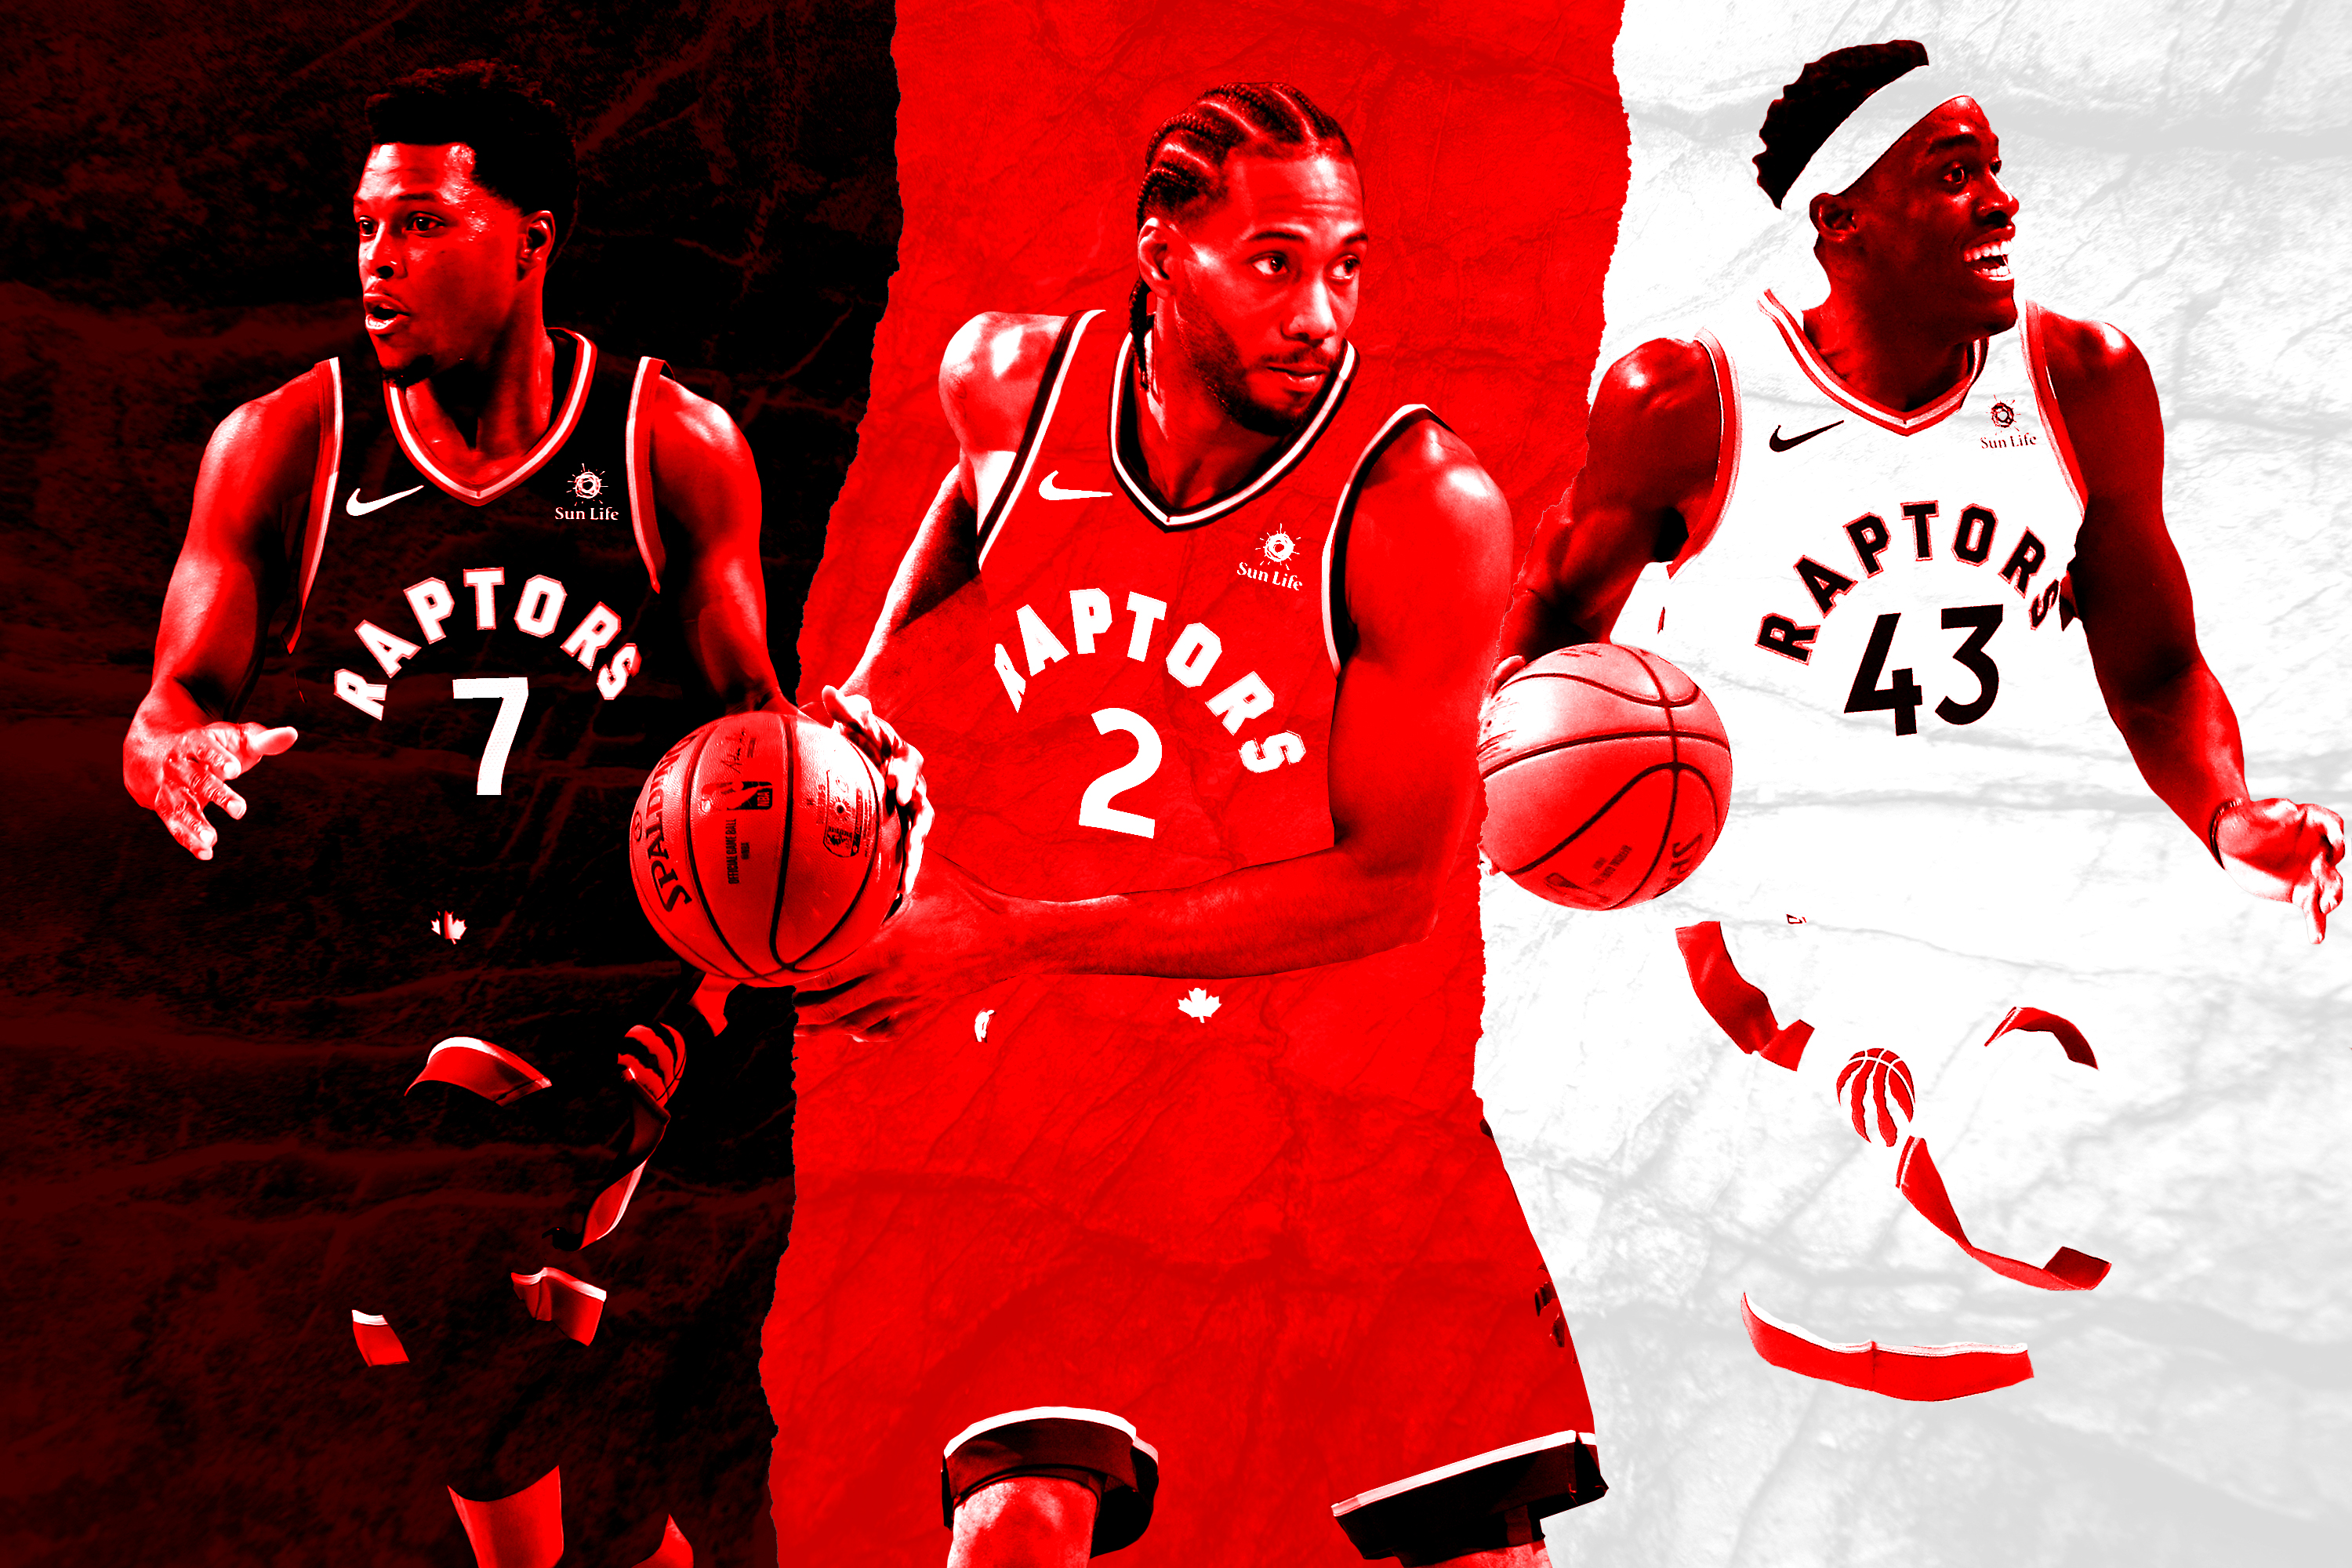 9ffe0f44a09 The Raptors Are the Most Complete Team in the NBA - The Ringer